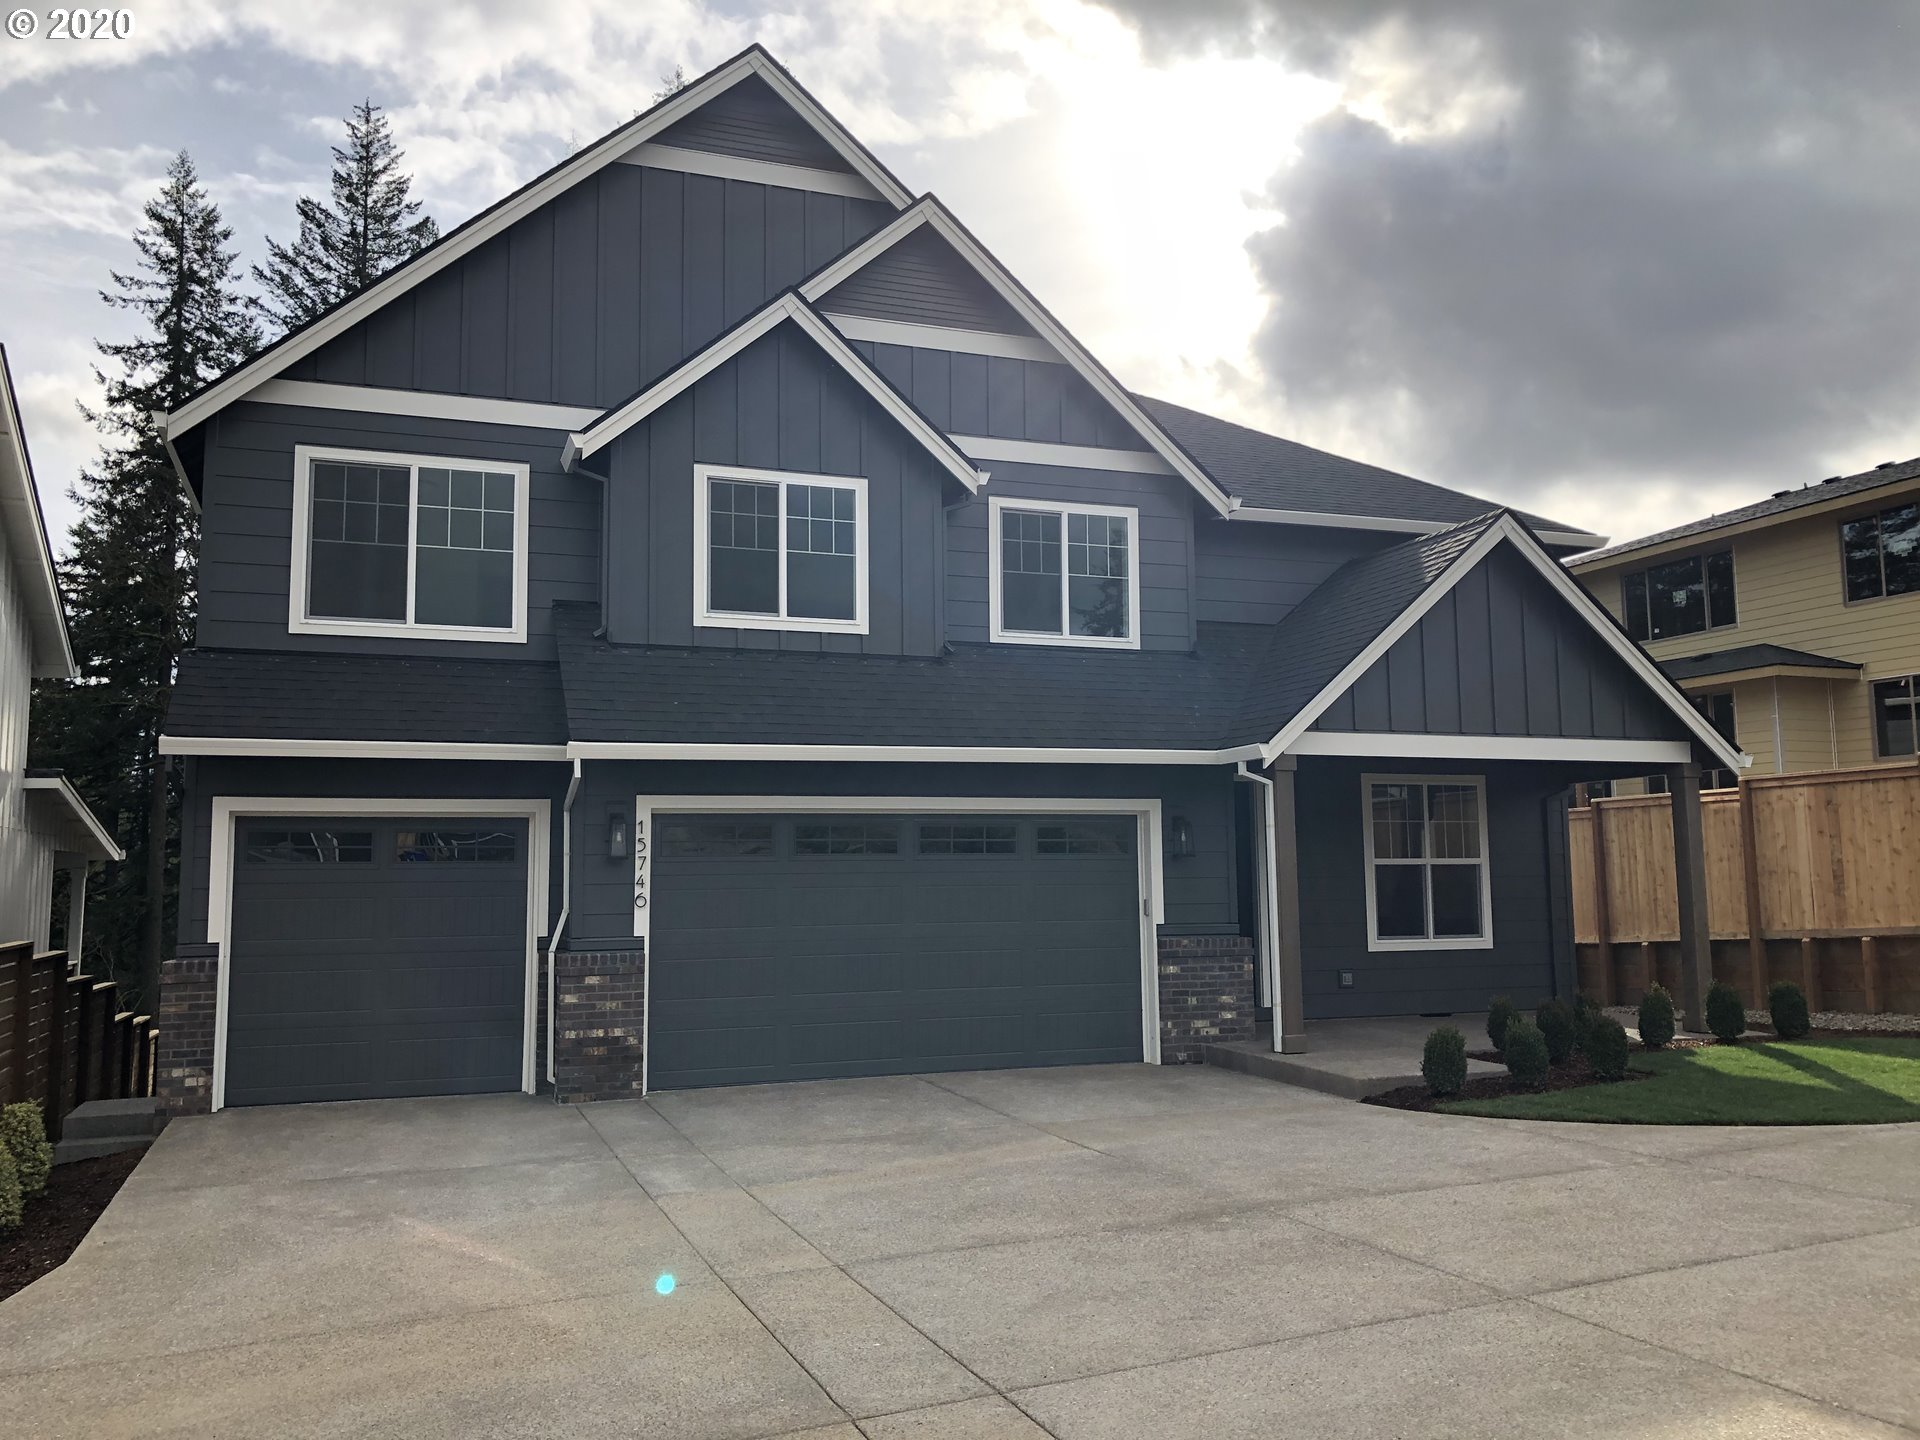 Photo of 15746 Bollam DR Happy Valley OR 97015